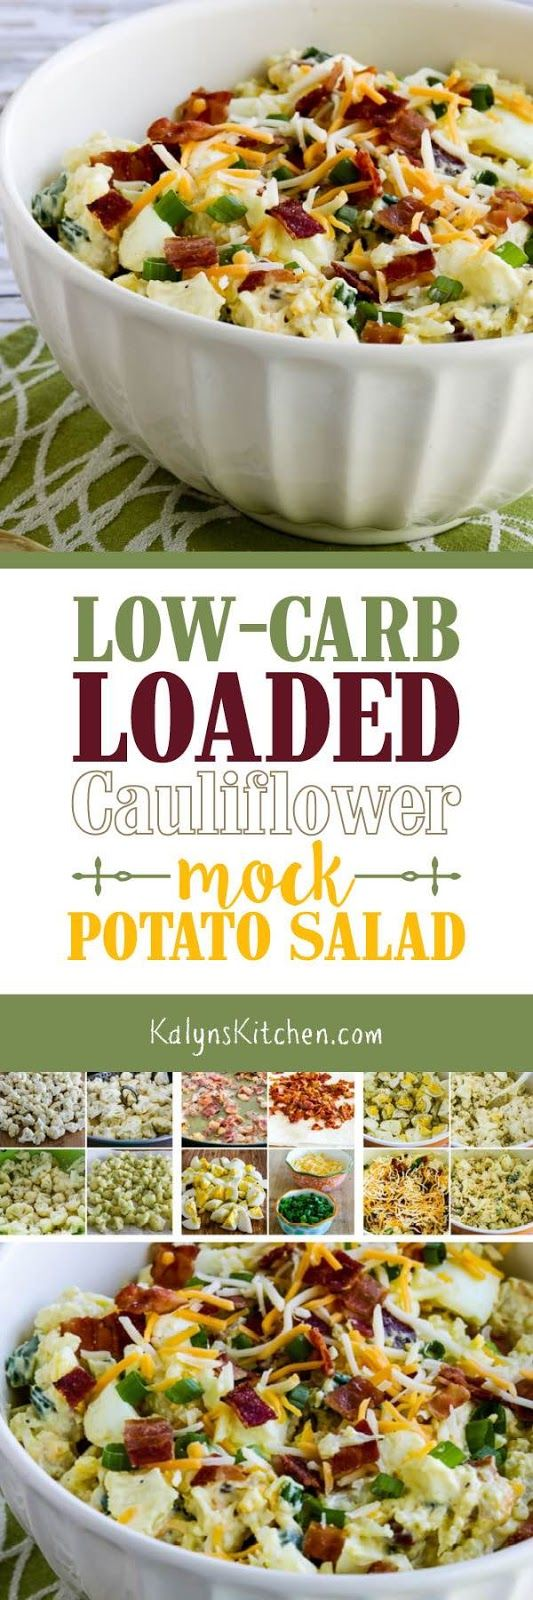 I was skeptical about the idea of a mock potato salad made with cauliflower, but this Low-Carb Loaded Cauliflower Mock Potato Salad has been a huge hit with everyone who's tried it! And this amazing salad that's perfect for summer parties or game-day food any time of year is low-carb, Keto, low-glycemic, and gluten-free. Try it; you'll be glad you did! [found on KalynsKitchen.com] #CauliflowerPotatoSalad #CauliflowerMockPotatoSalad #LowCarbCauliflowerMockPotatoSalad